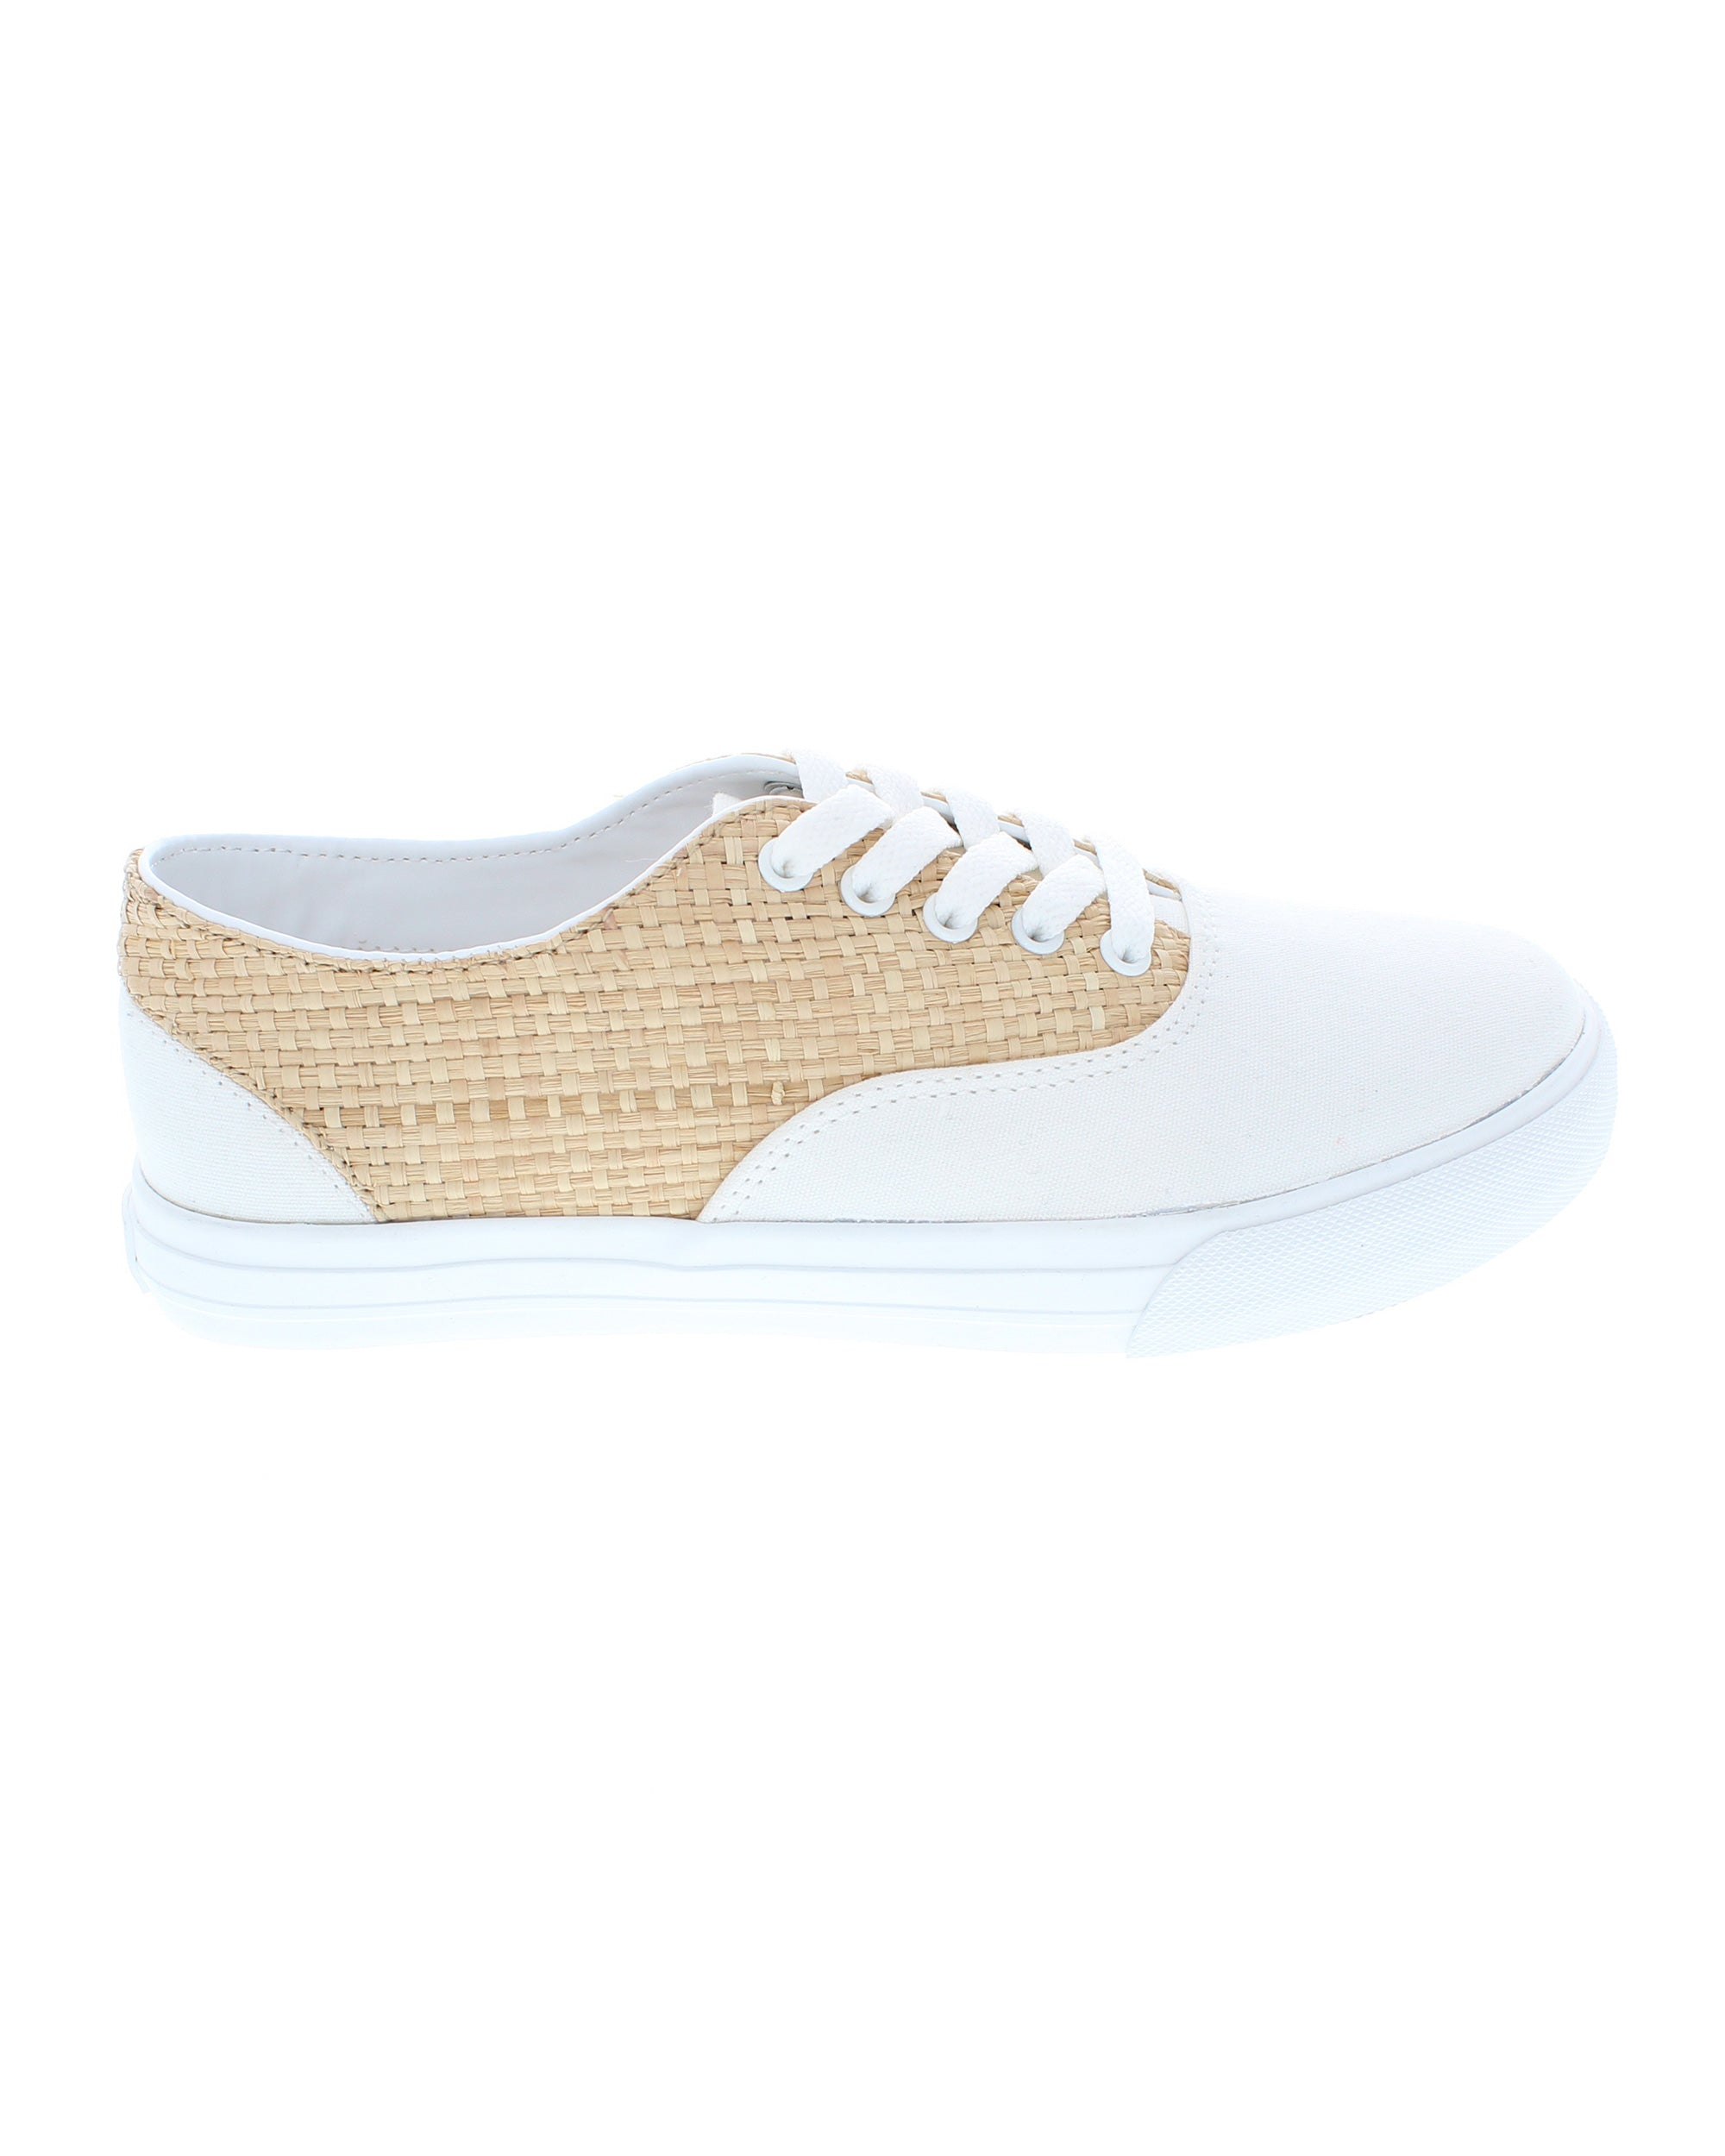 Bimini Ratan & White Canvas Lace Up